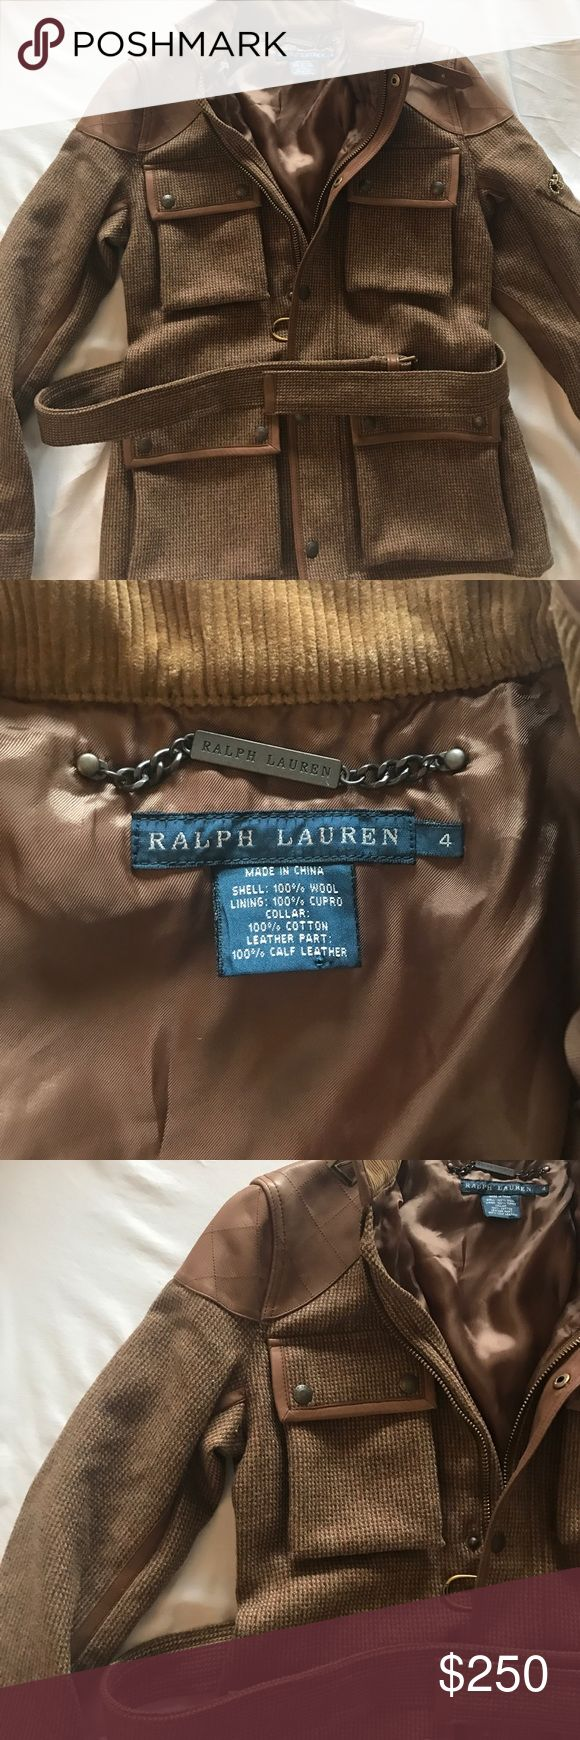 Ralph Lauren Polo Jacket  - calf leather + wool So chic! Never worn 100% Authentic Ralph Lauren Collection purchased in Beverly Hills polo jacket Ralph Lauren Jackets & Coats Utility Jackets